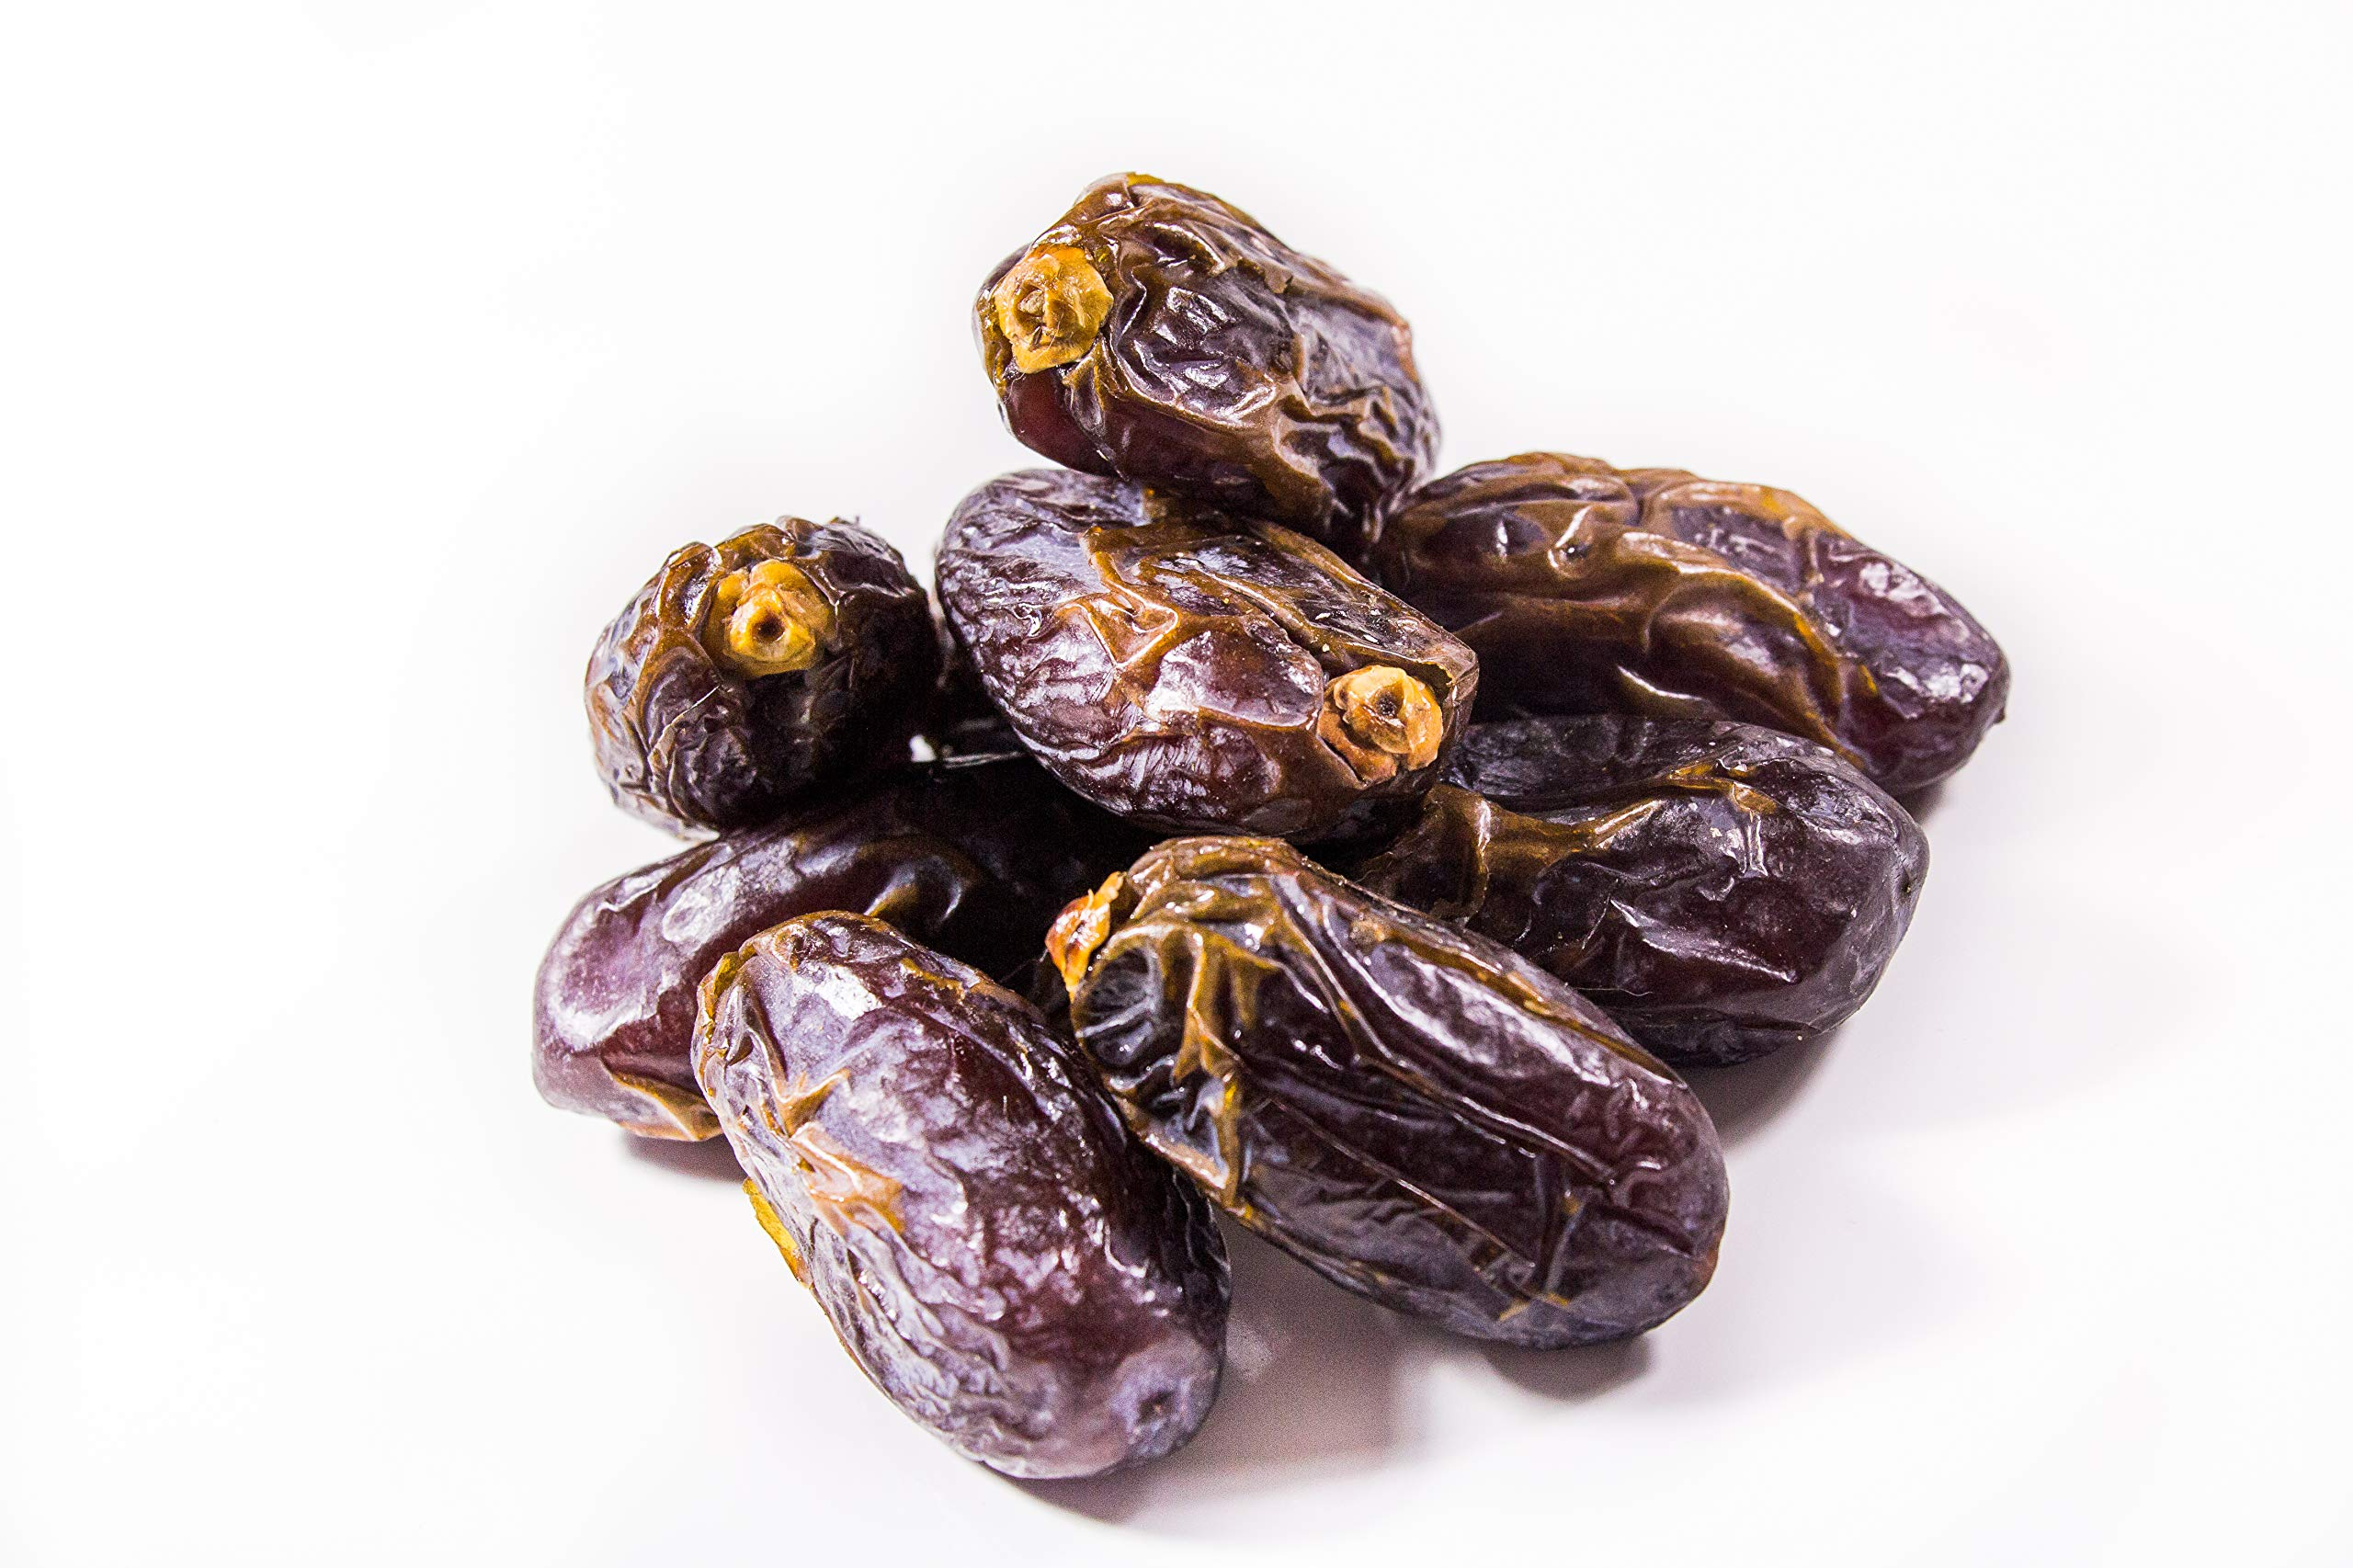 Gourmet Nuts and Dried Fruit Premium Medjool Dates Bulk Value 10 Pounds